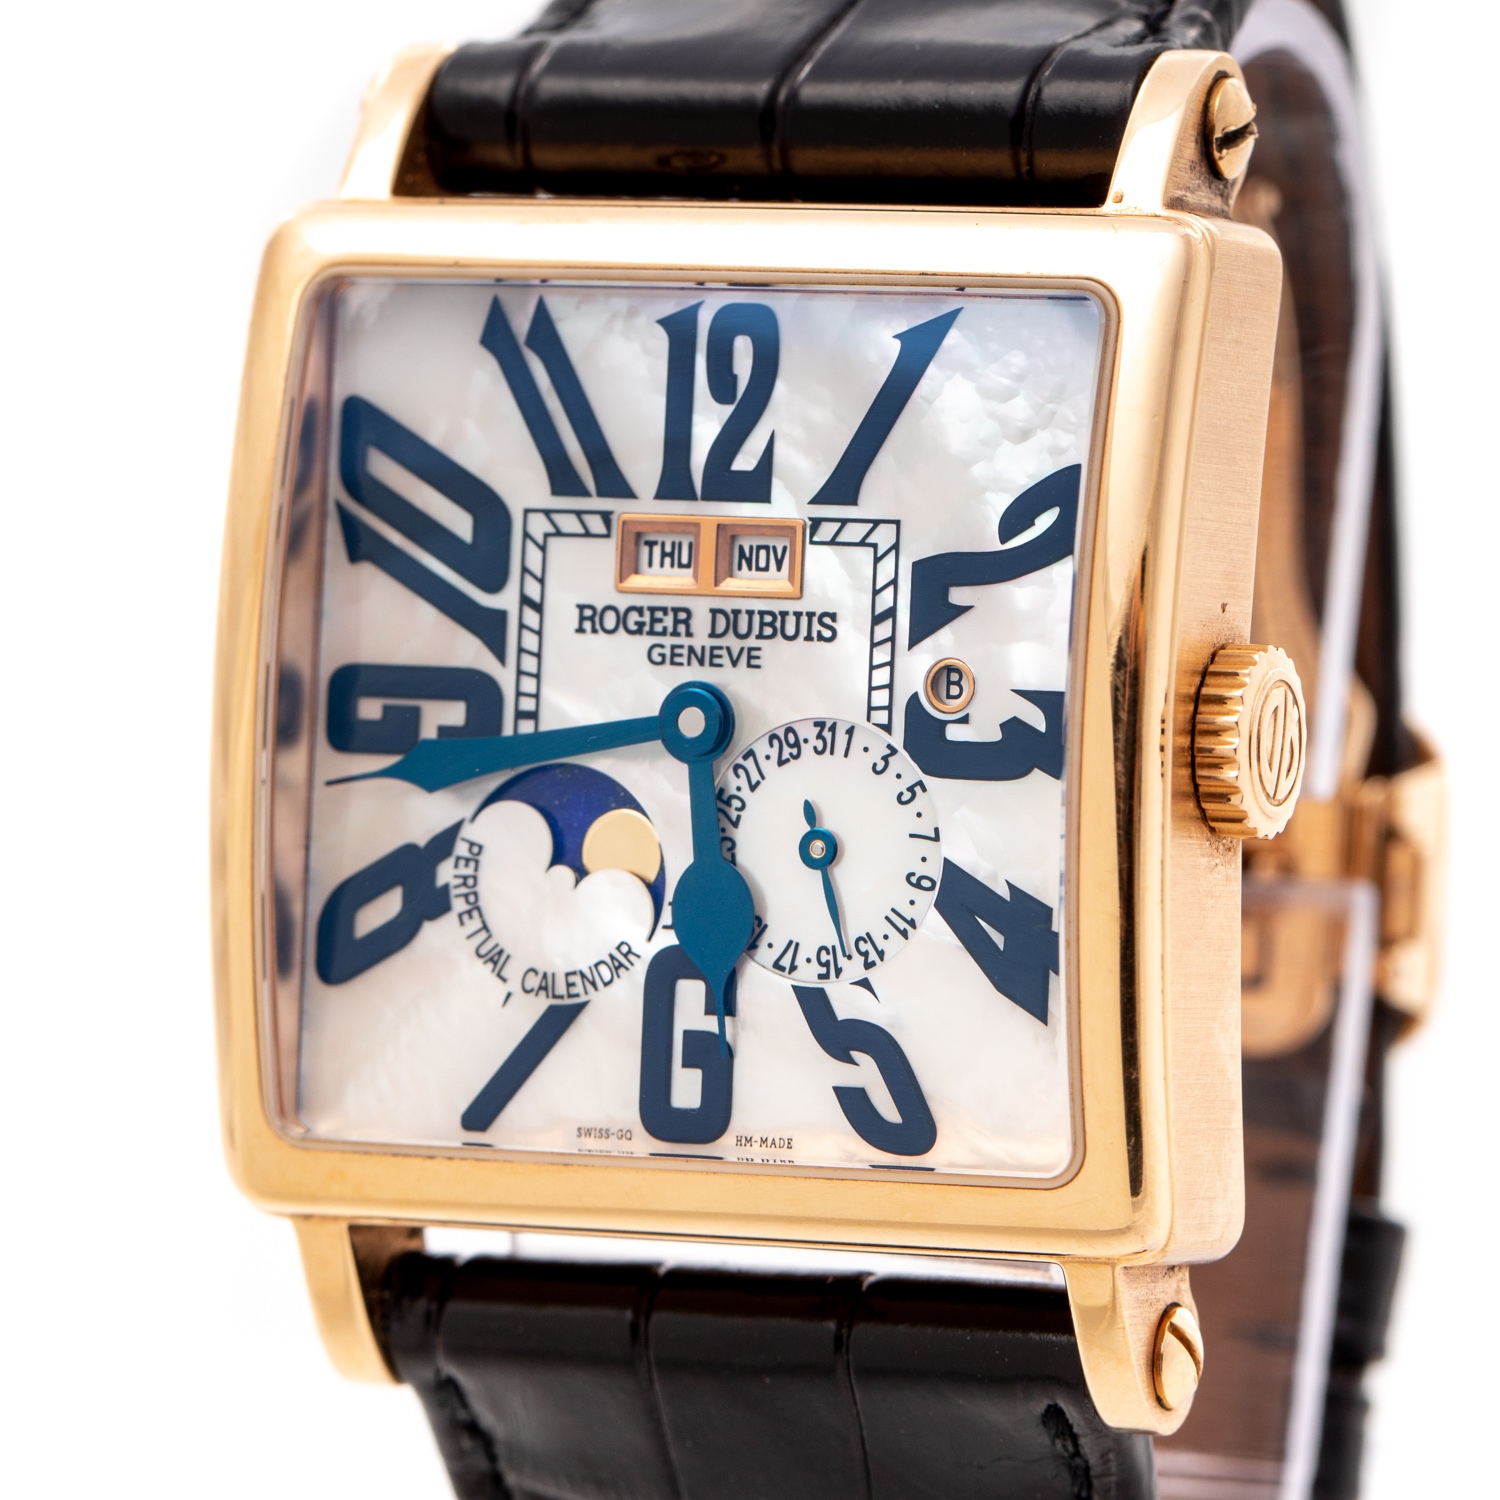 ROGER DUBUIS GOLDEN SQUARE PERPETUAL CALENDAR 28 PIECES WORLDWIDE ROSE GOLD G40